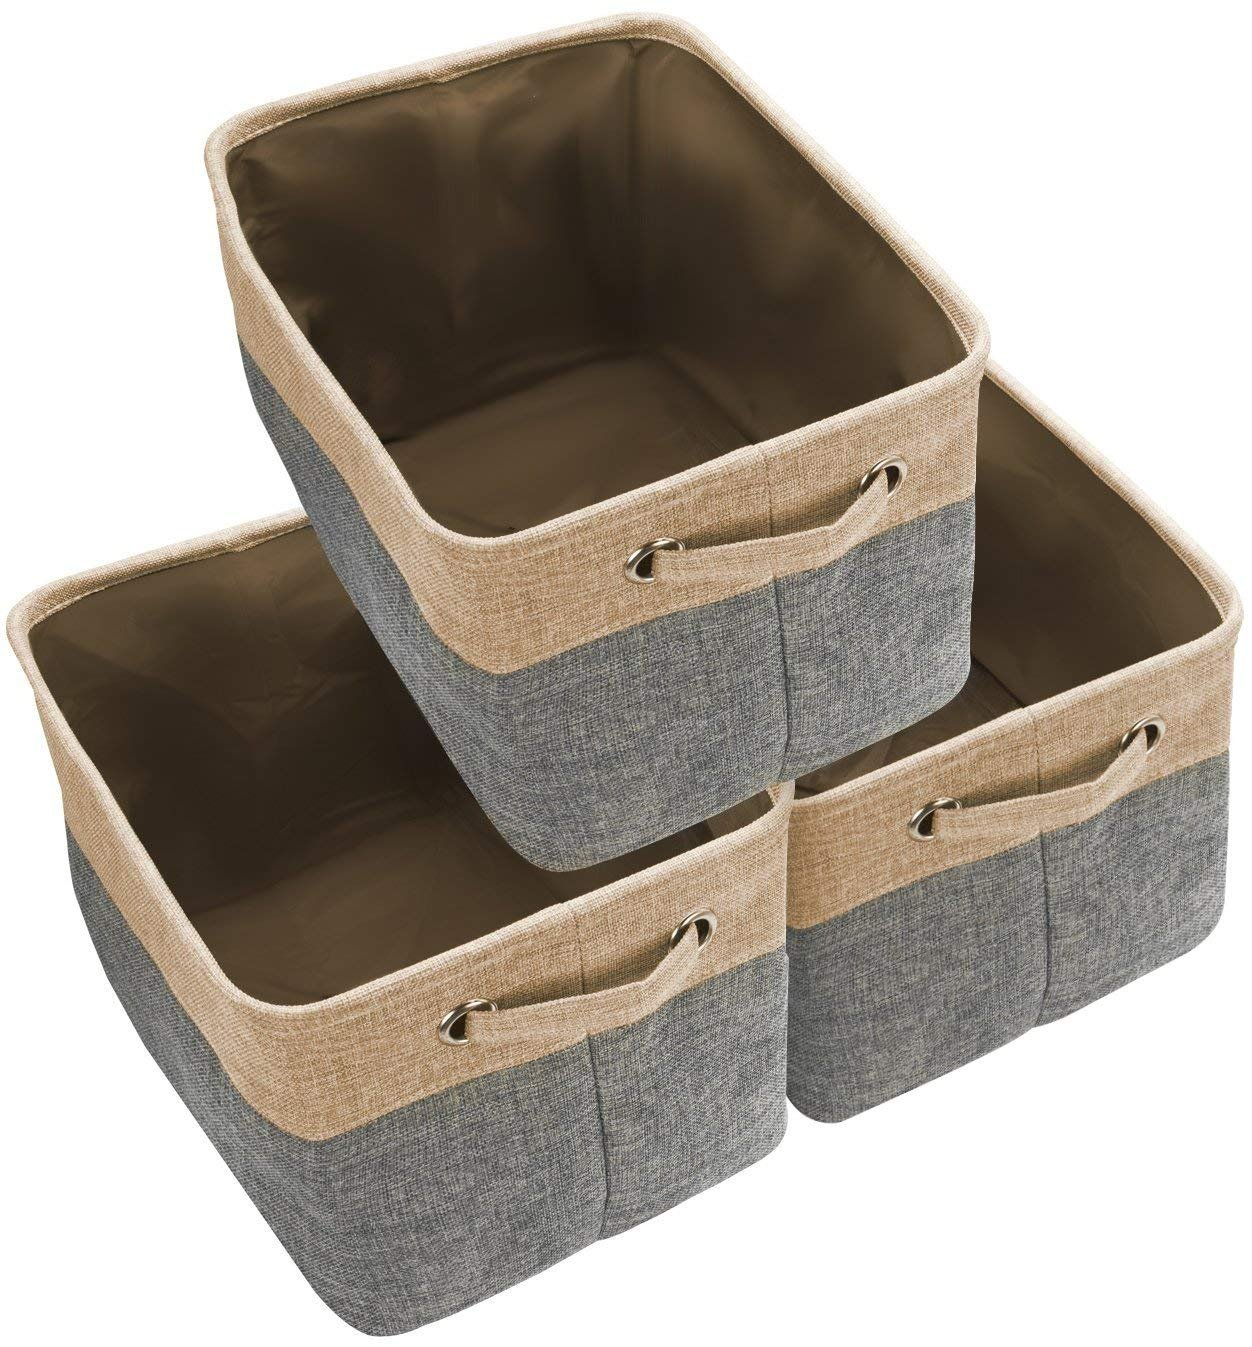 Awekris Large Storage Basket Bin Set [3-Pack] Storage Cube Box Foldable Canvas Fabric Collapsible Organizer with Handles for Home Office Closet, Grey/Tan (Grey) by Awekris